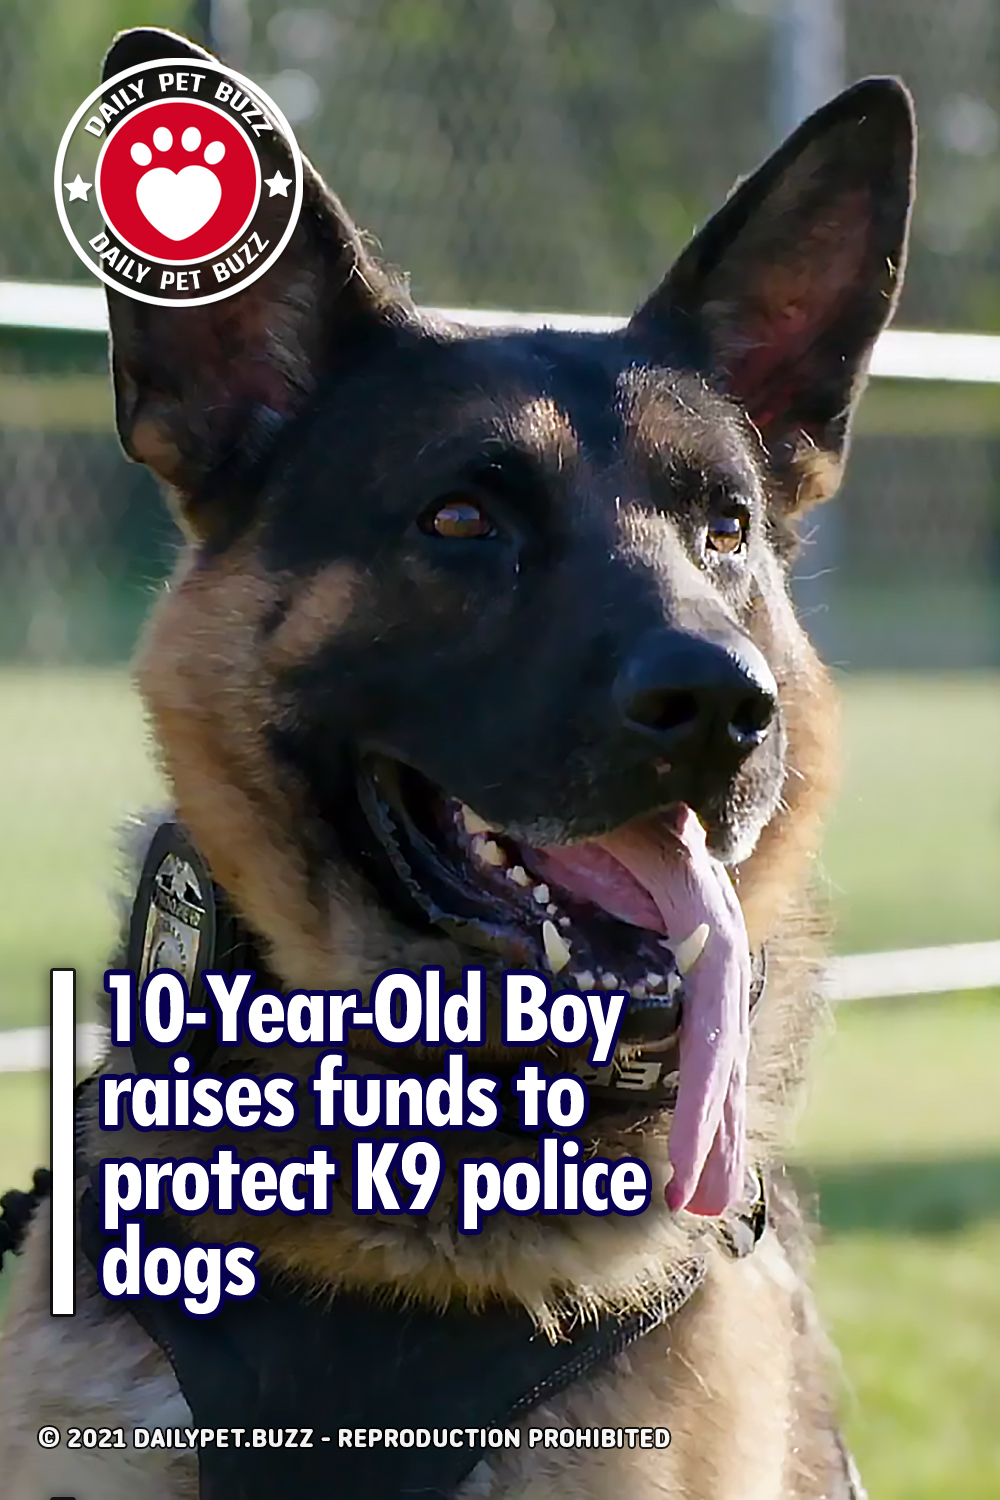 10-Year-Old Boy raises funds to protect K9 police dogs